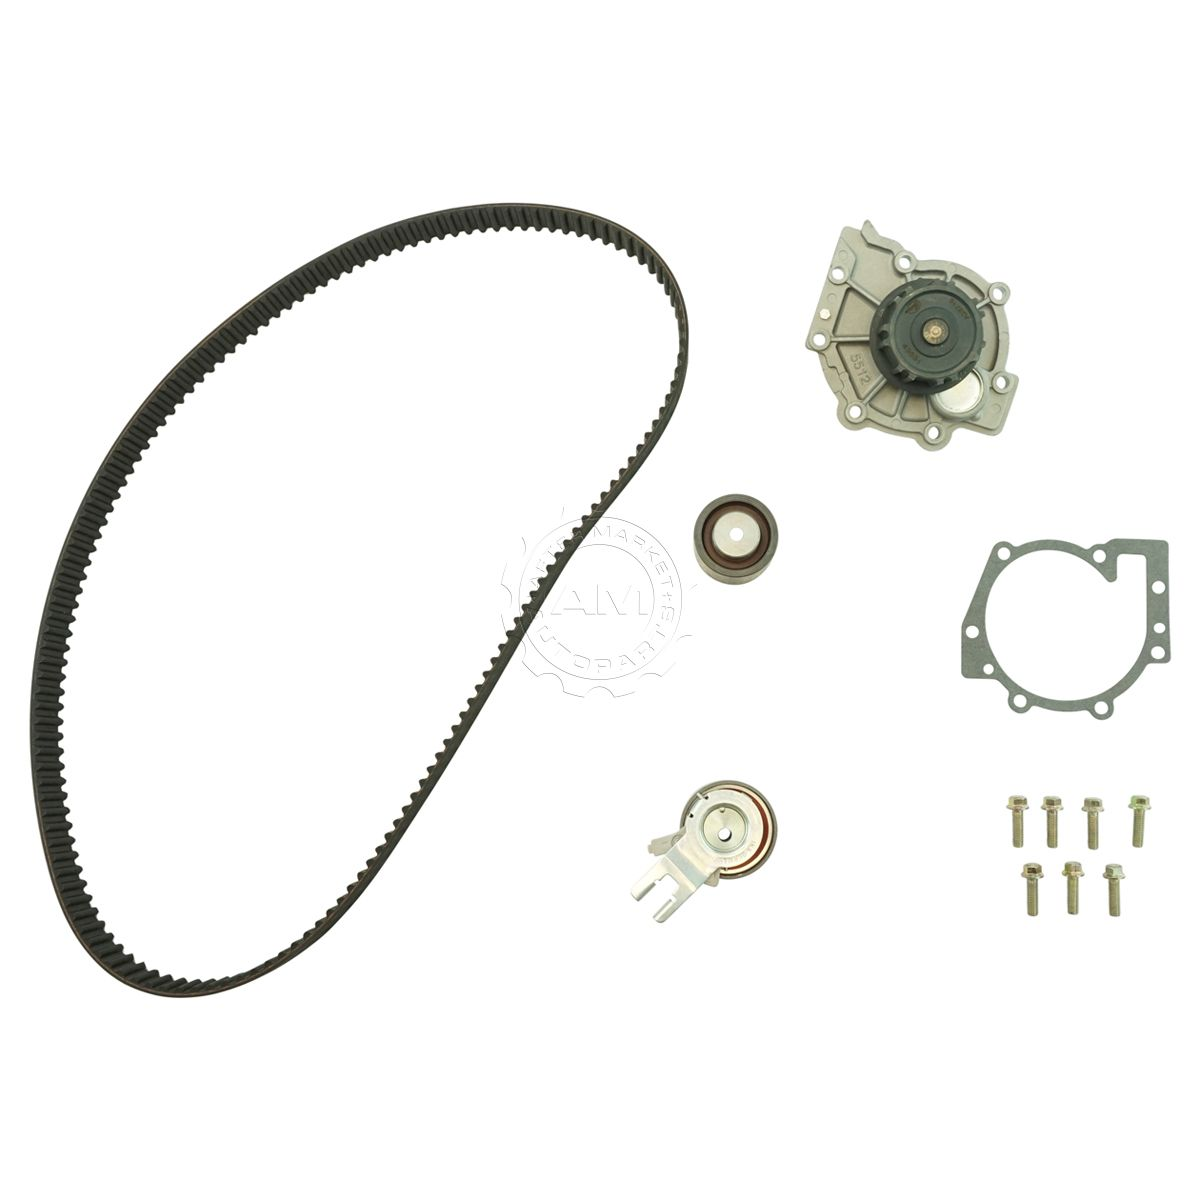 Gates tckwp319a timing belt with water pump kit for 01 02 volvo s80 2 9l